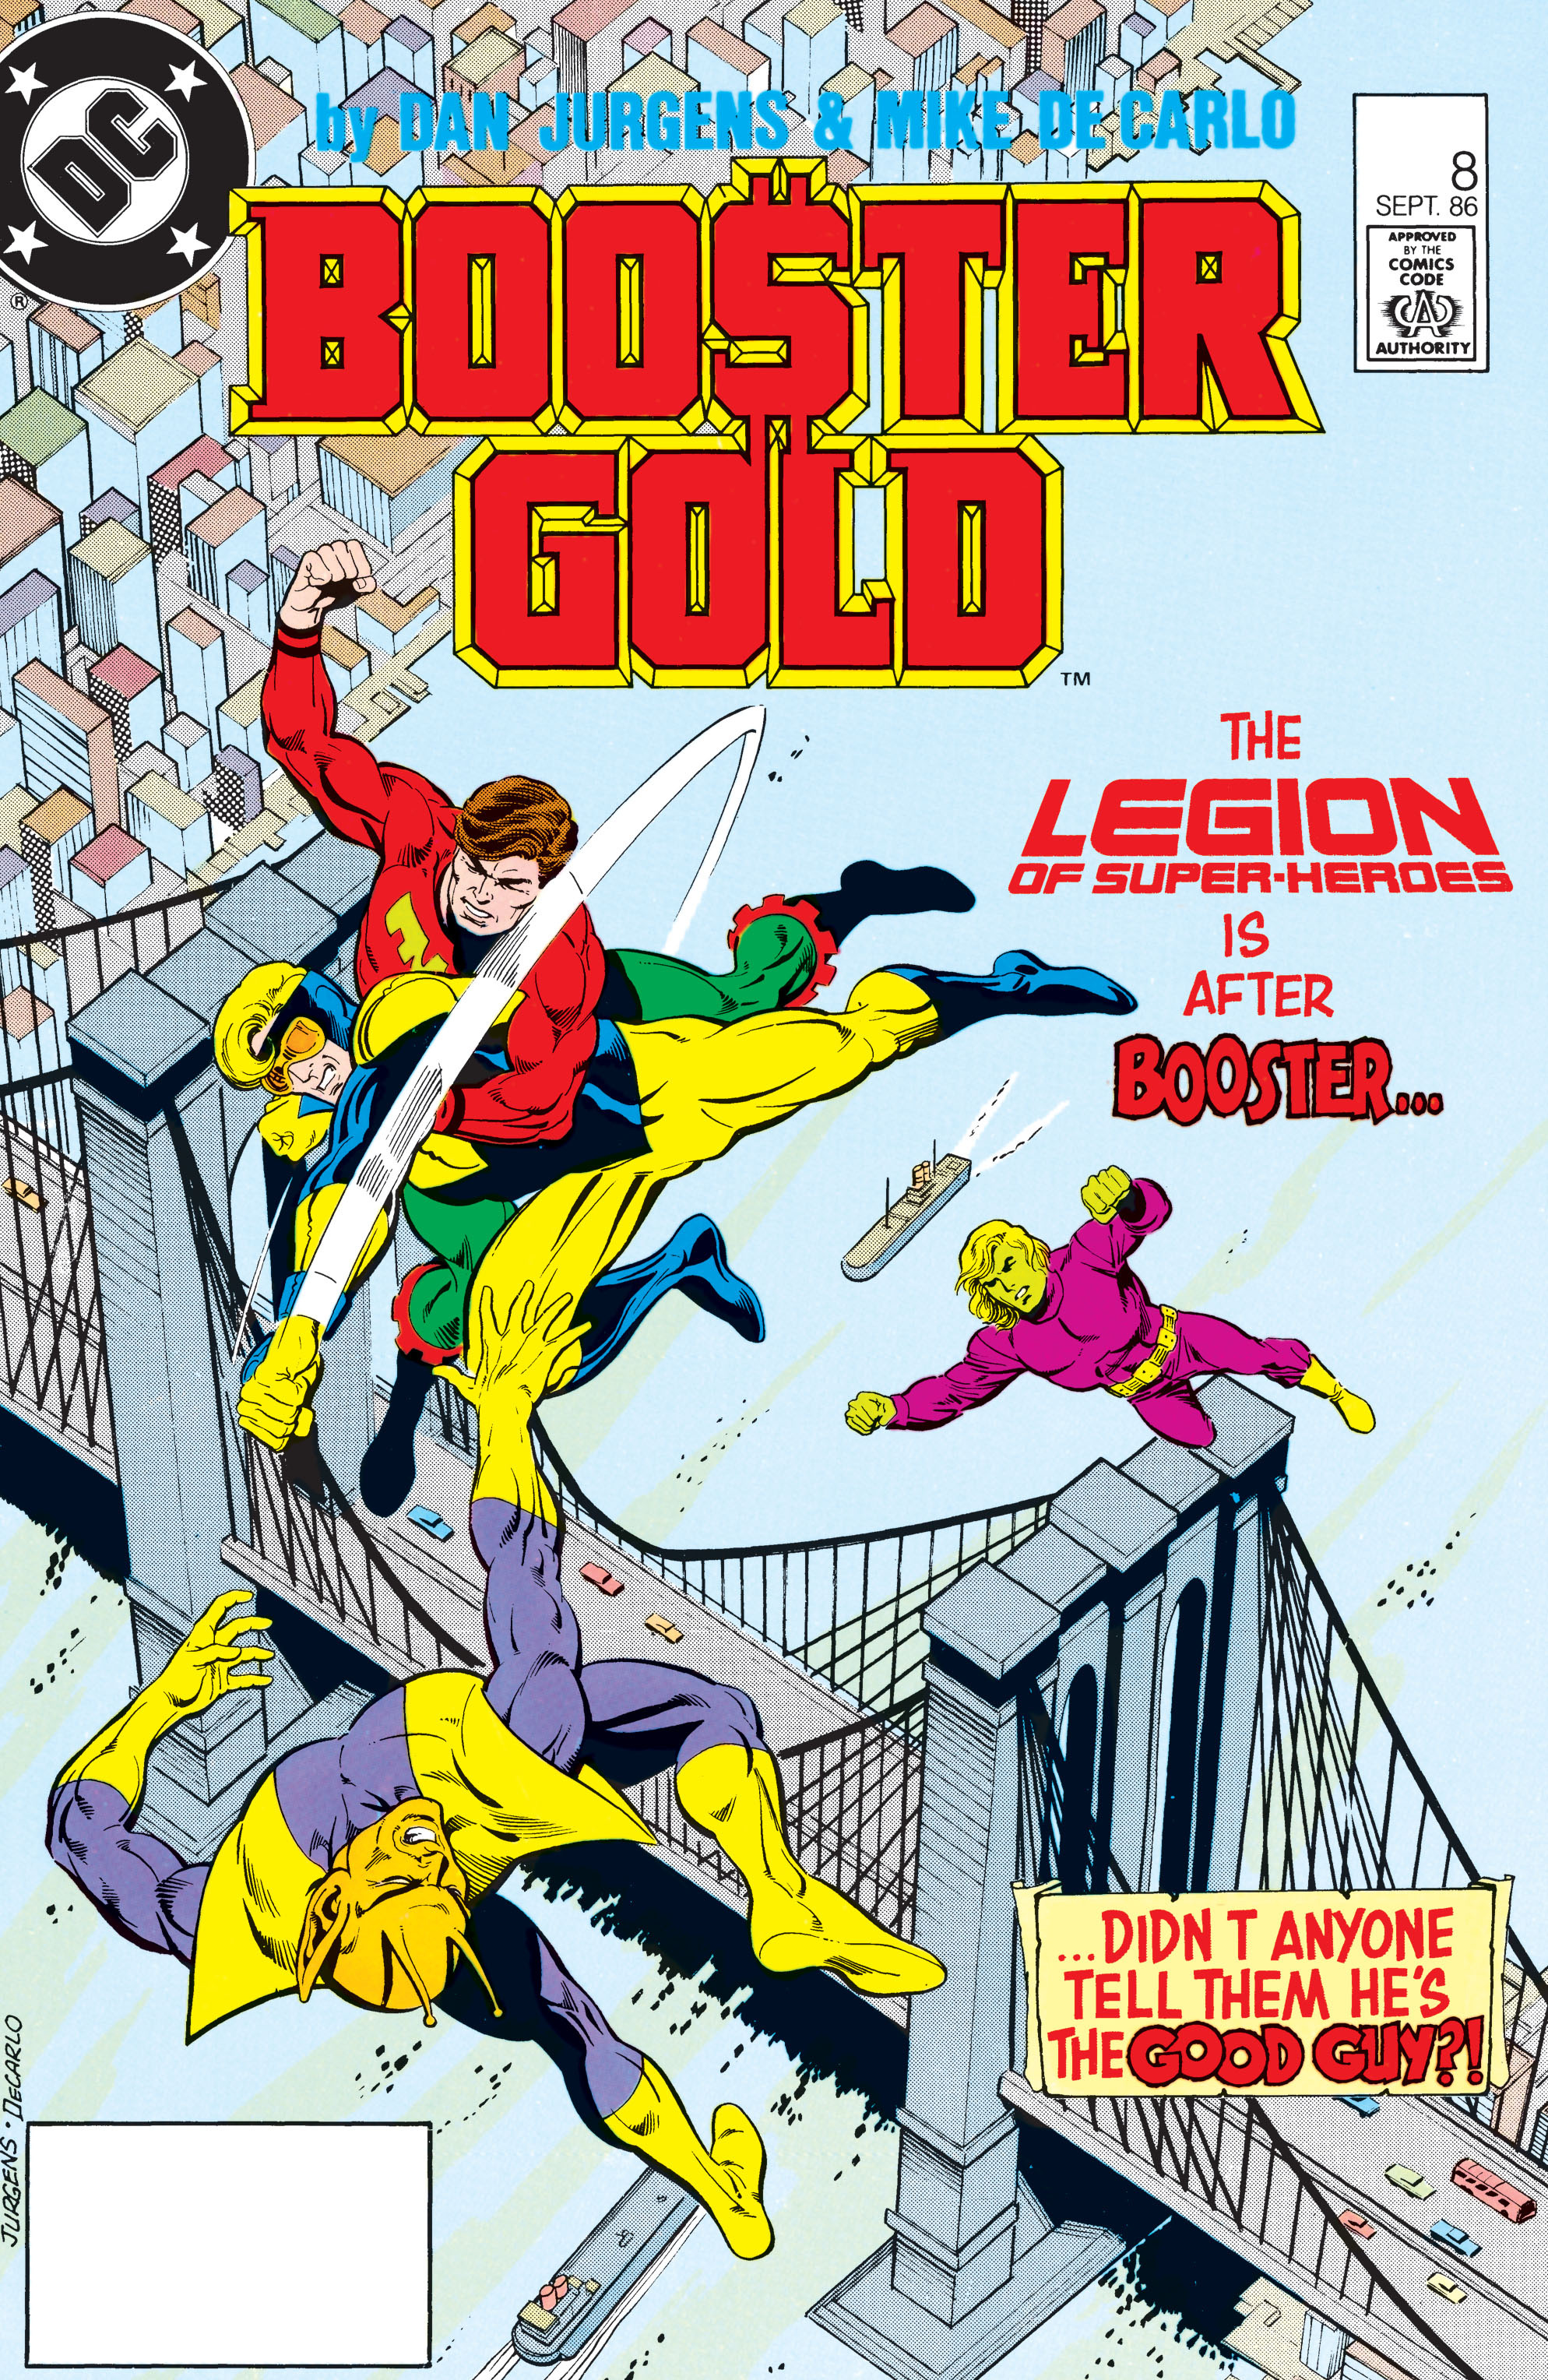 Booster Gold 1986 Issue 8